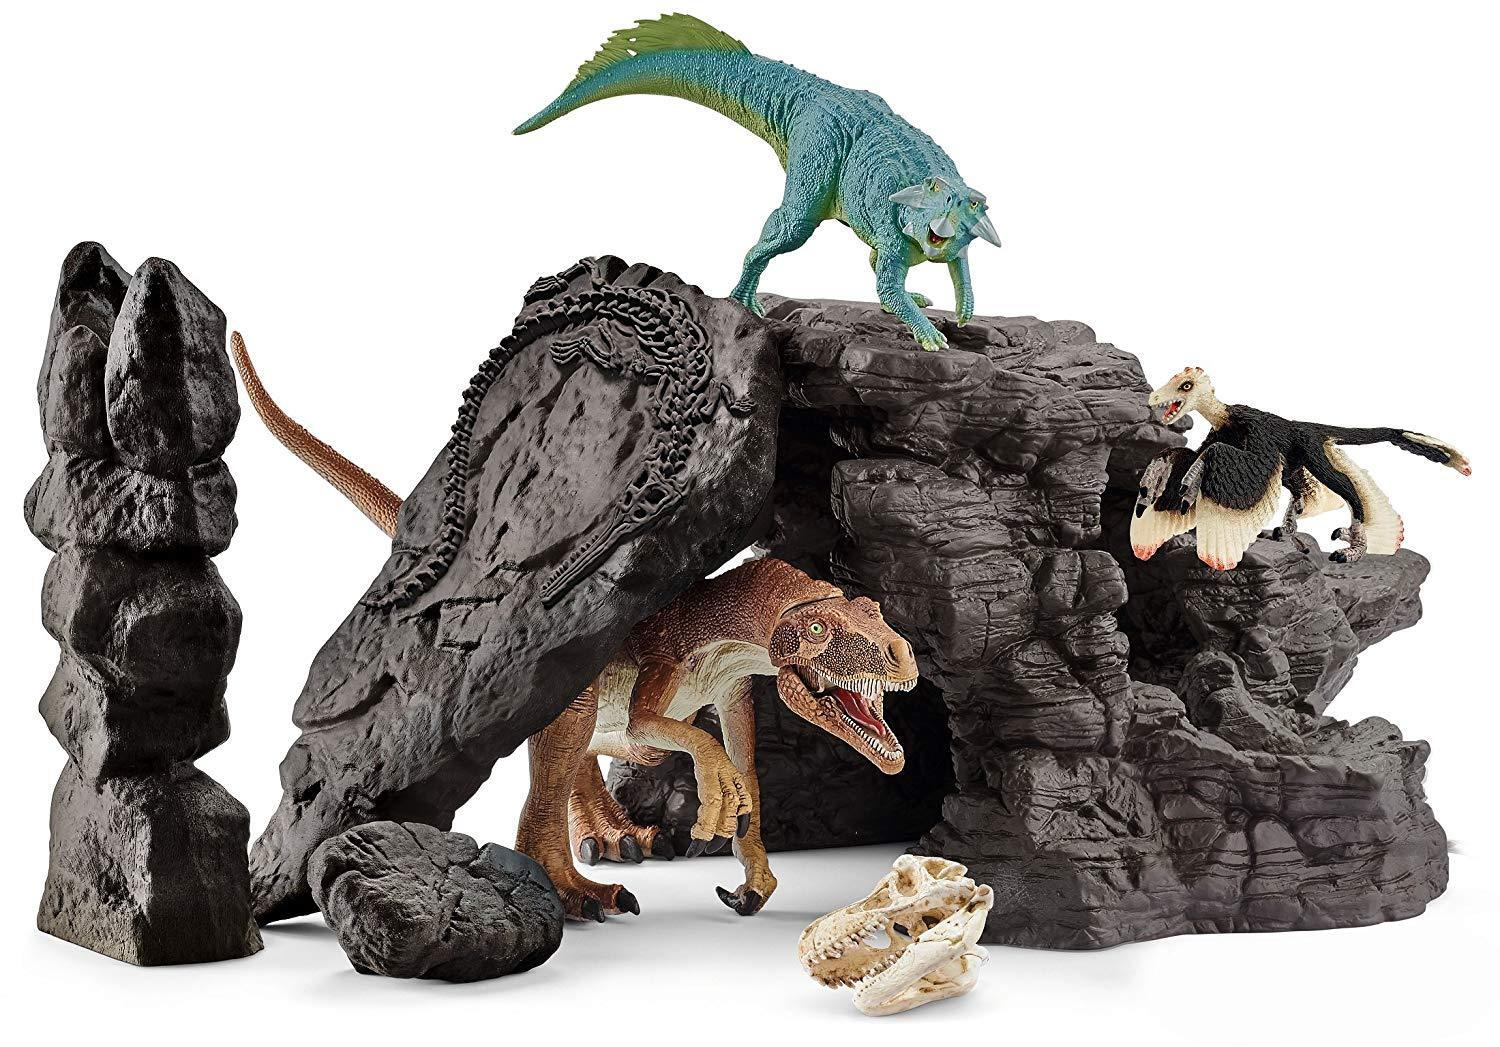 Schleich Dinosaur Cave Set with 3 Dino Figures and Accessories 41461